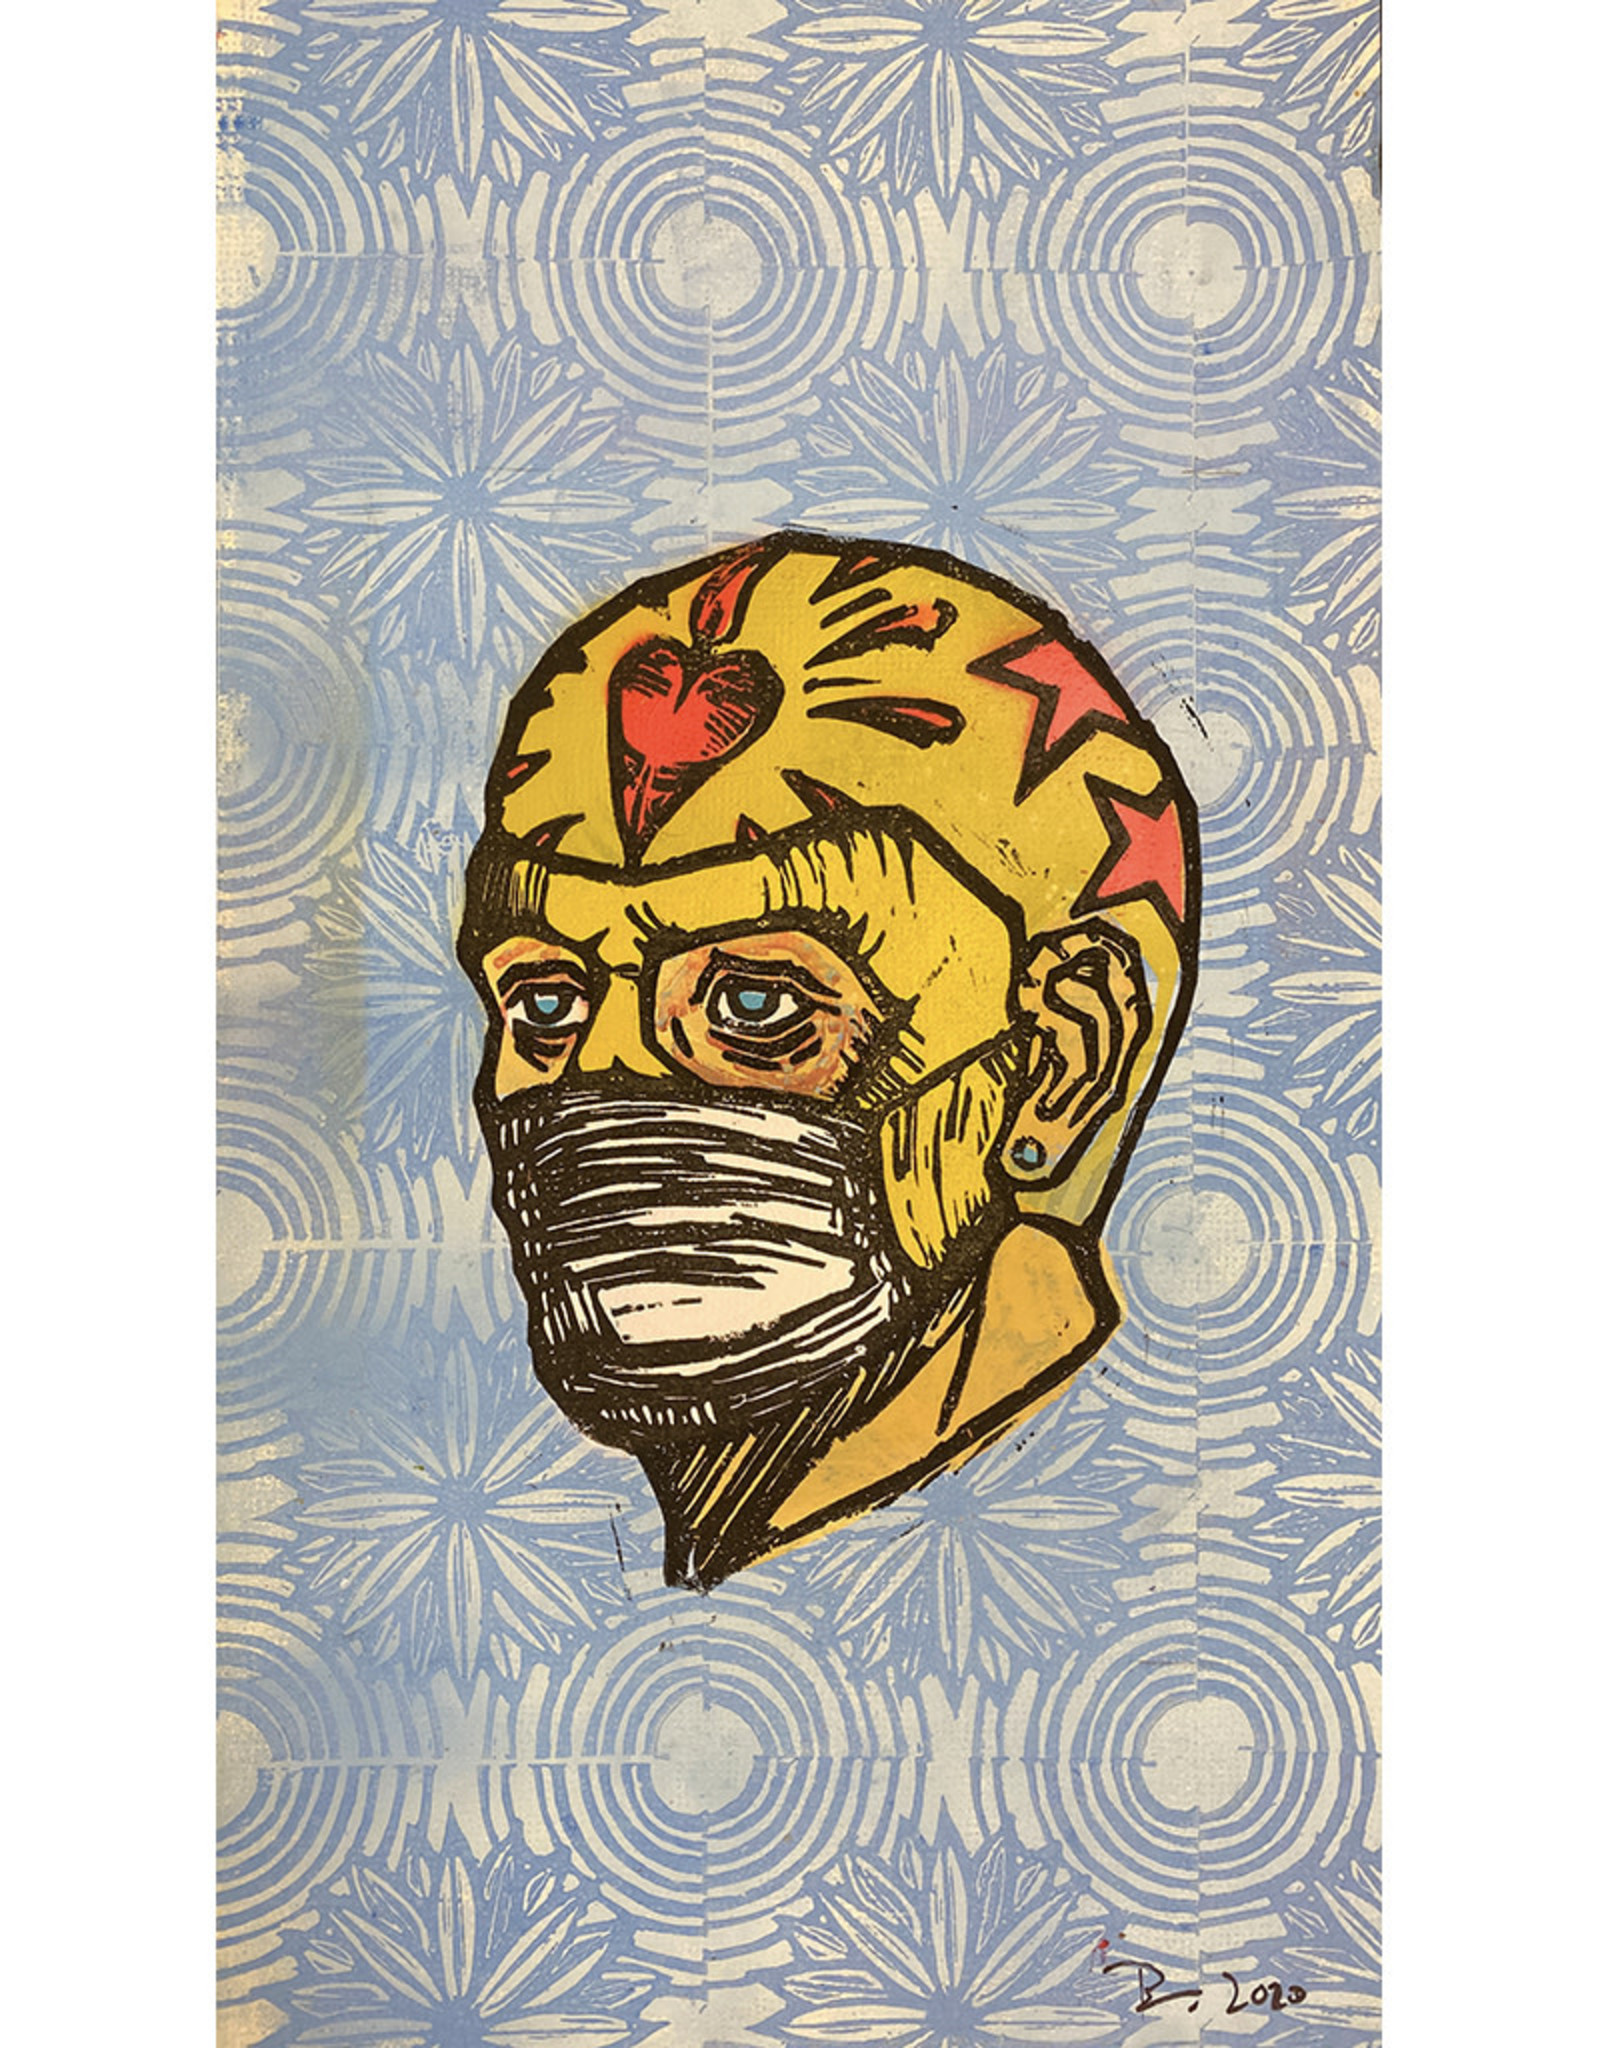 Paul Punzo Safety First Print (no lettering) by Paul Punzo